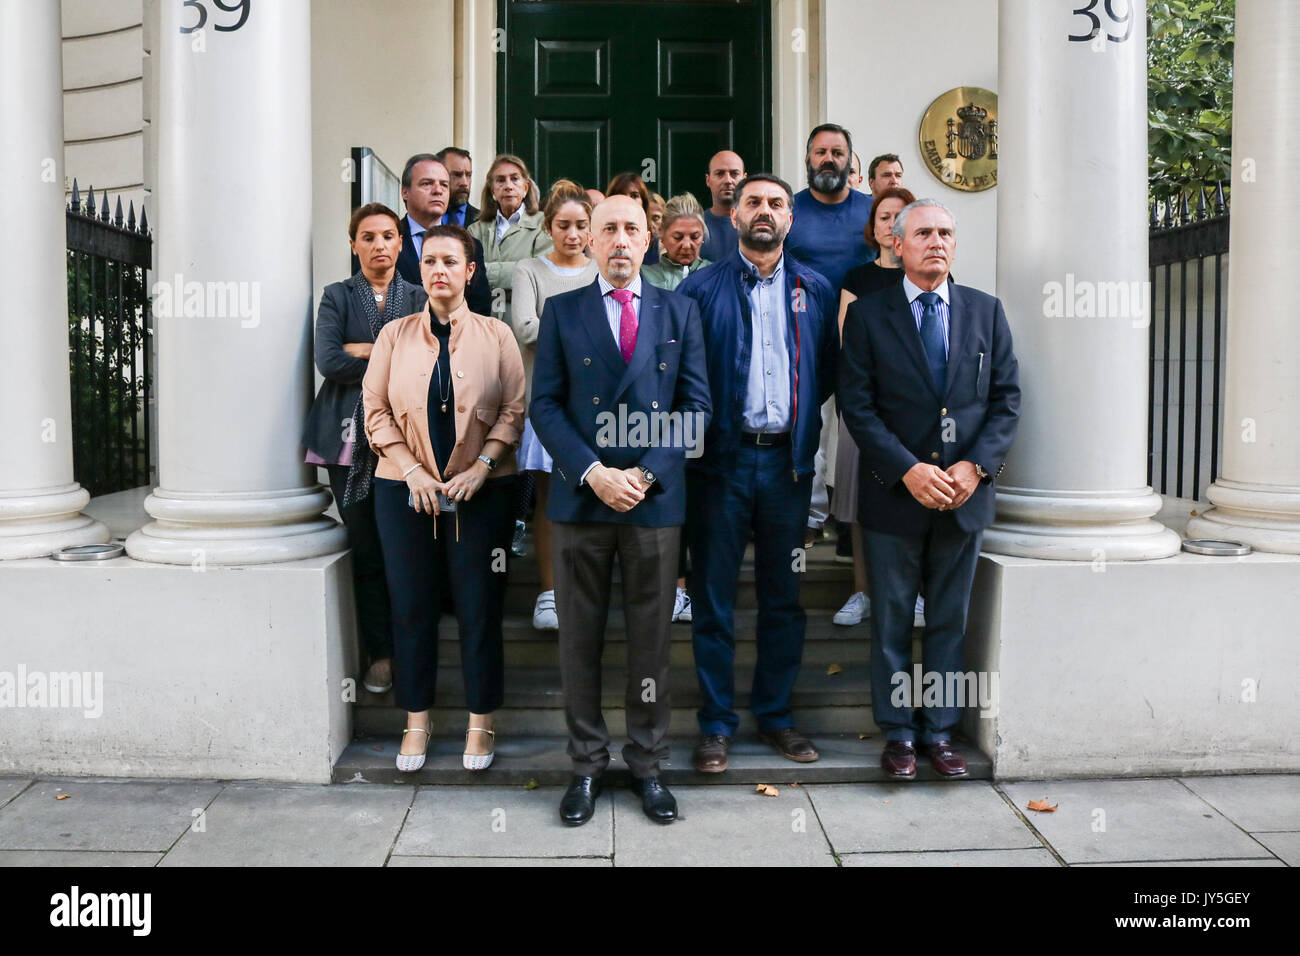 London UK. 18th August 2017. Spanish Embassy staff led by Jose Maria Fernandez Lopez de Turiso (Deputy Head of Mission) held a one minute silence  outside the Spanish embassy in  London for the victims of the Barcelona terror attacks Credit: amer ghazzal/Alamy Live News - Stock Image